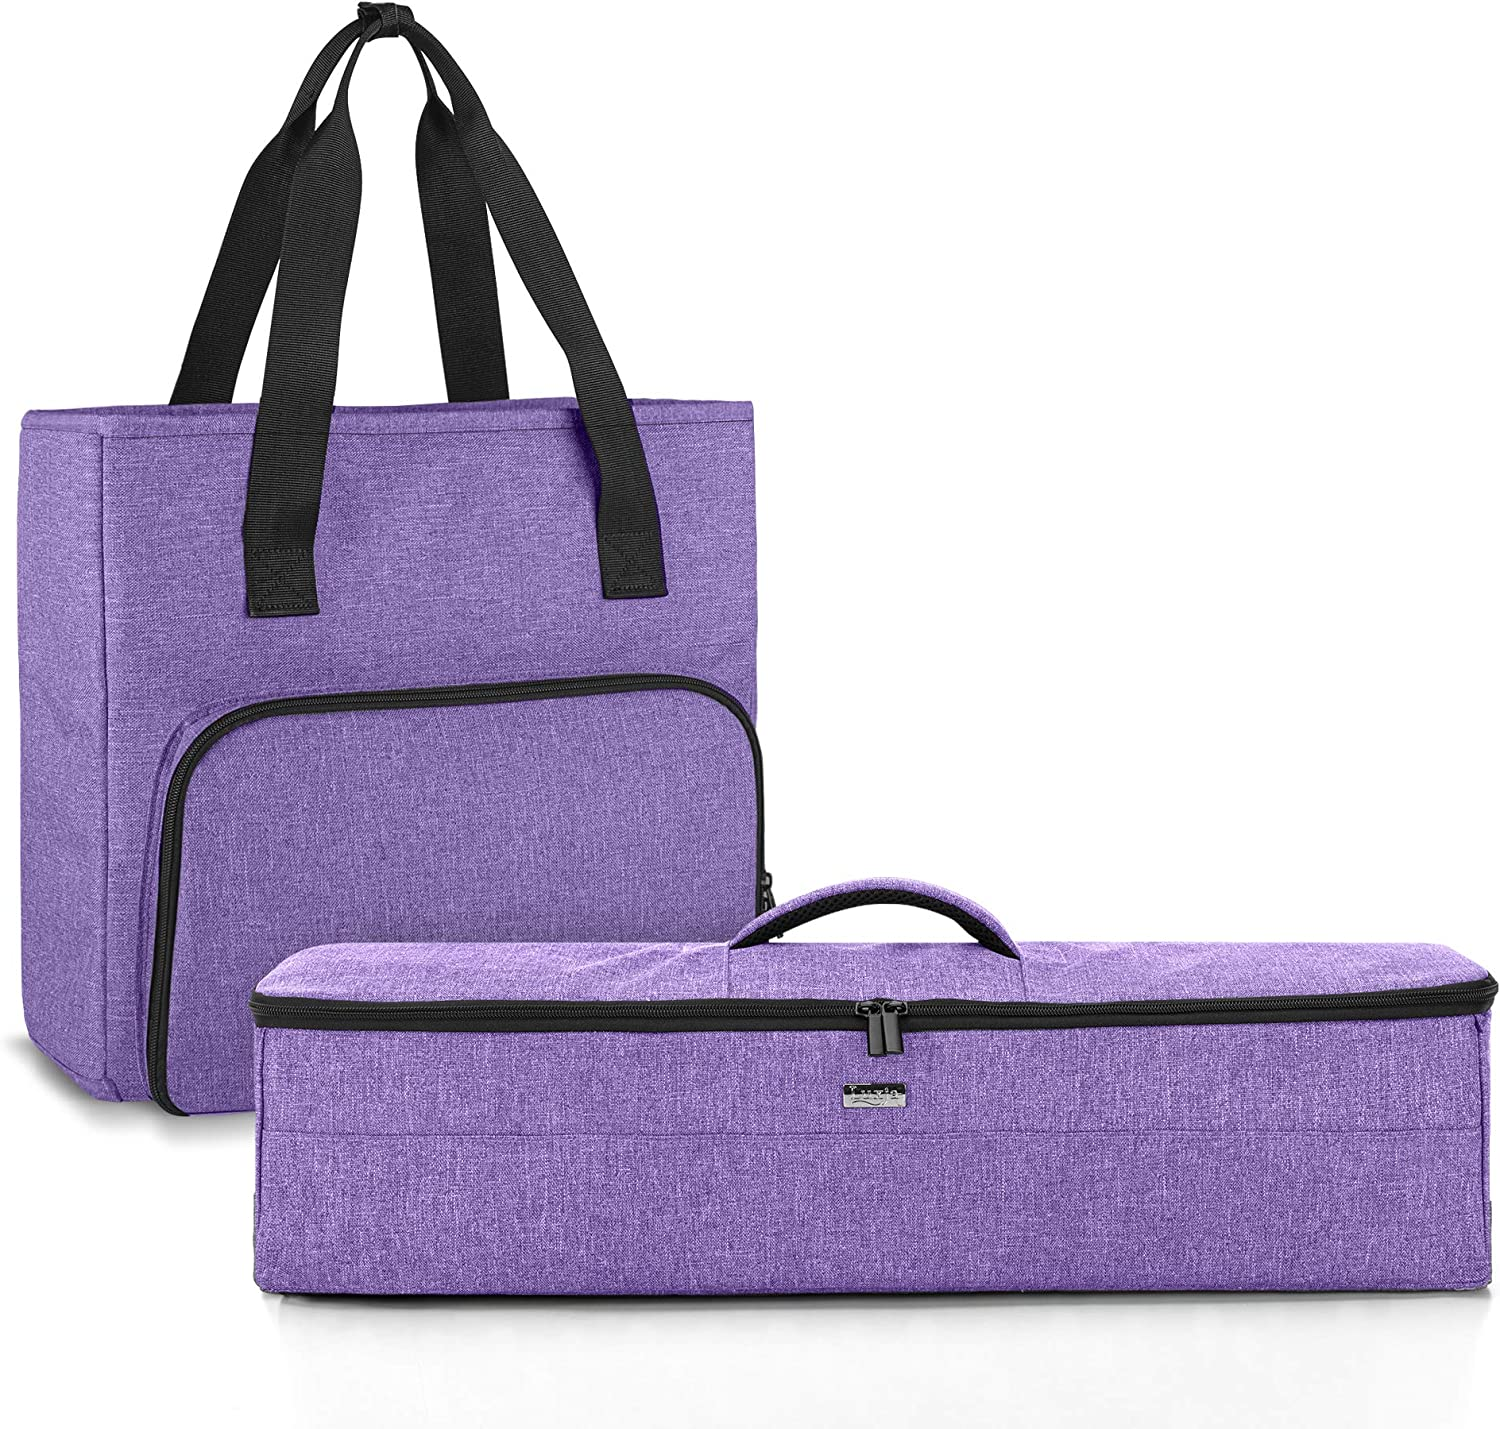 Luxja Tote Compatible with Cricut Accessories (with a Die-Cut Machine Cover), Carrying Bag Compatible with Cricut Supplies. (No Accessories Included.), Purple